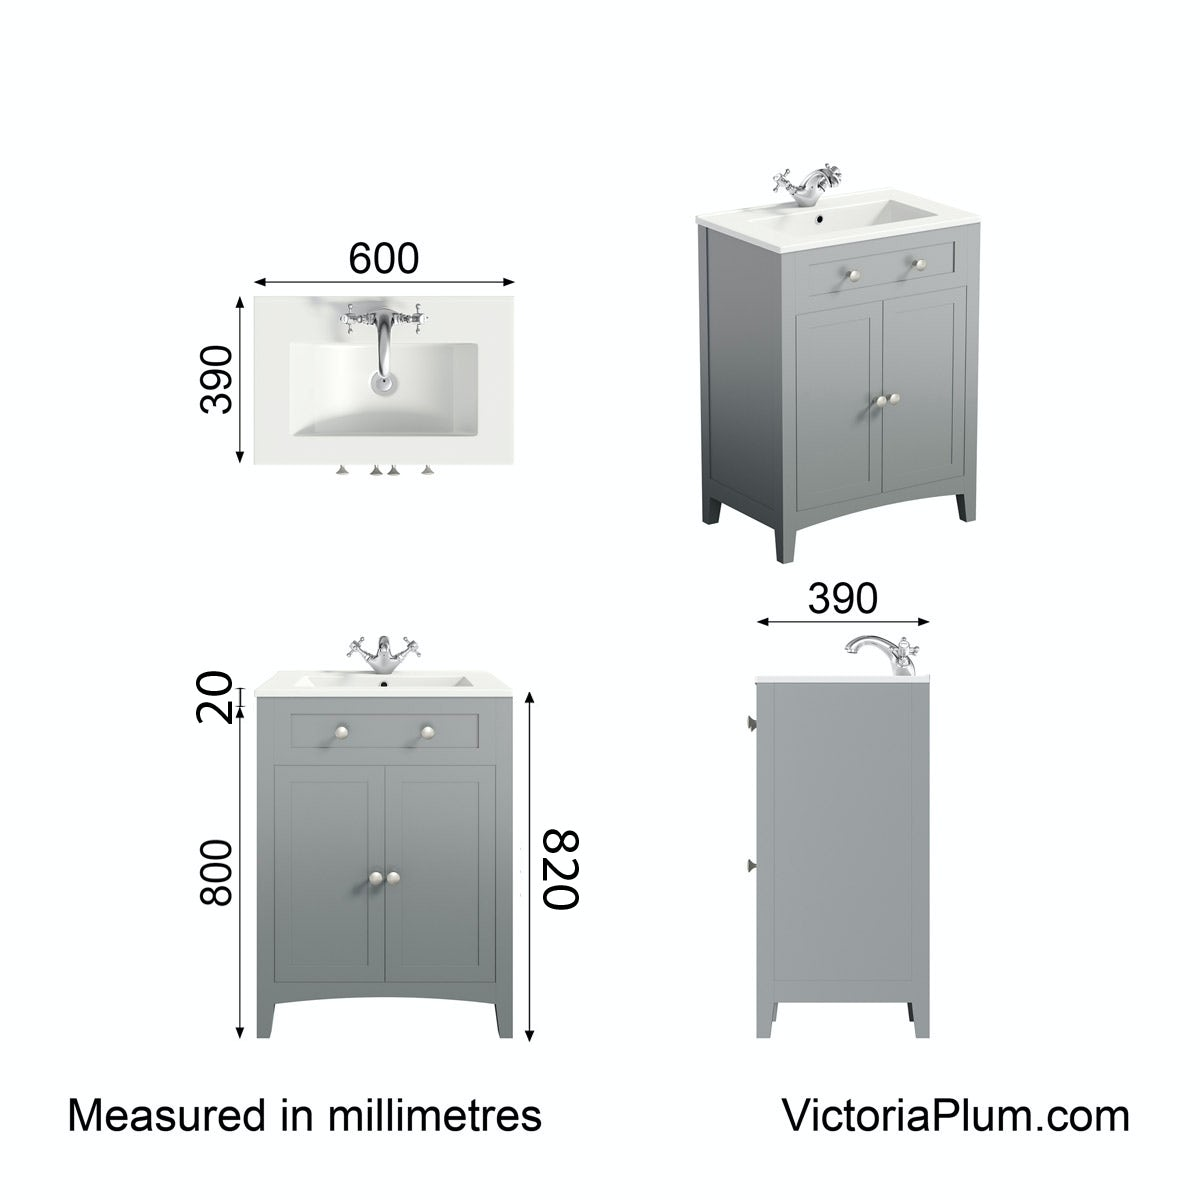 Dimensions for The Bath Co. Camberley grey vanity unit with basin 600mm